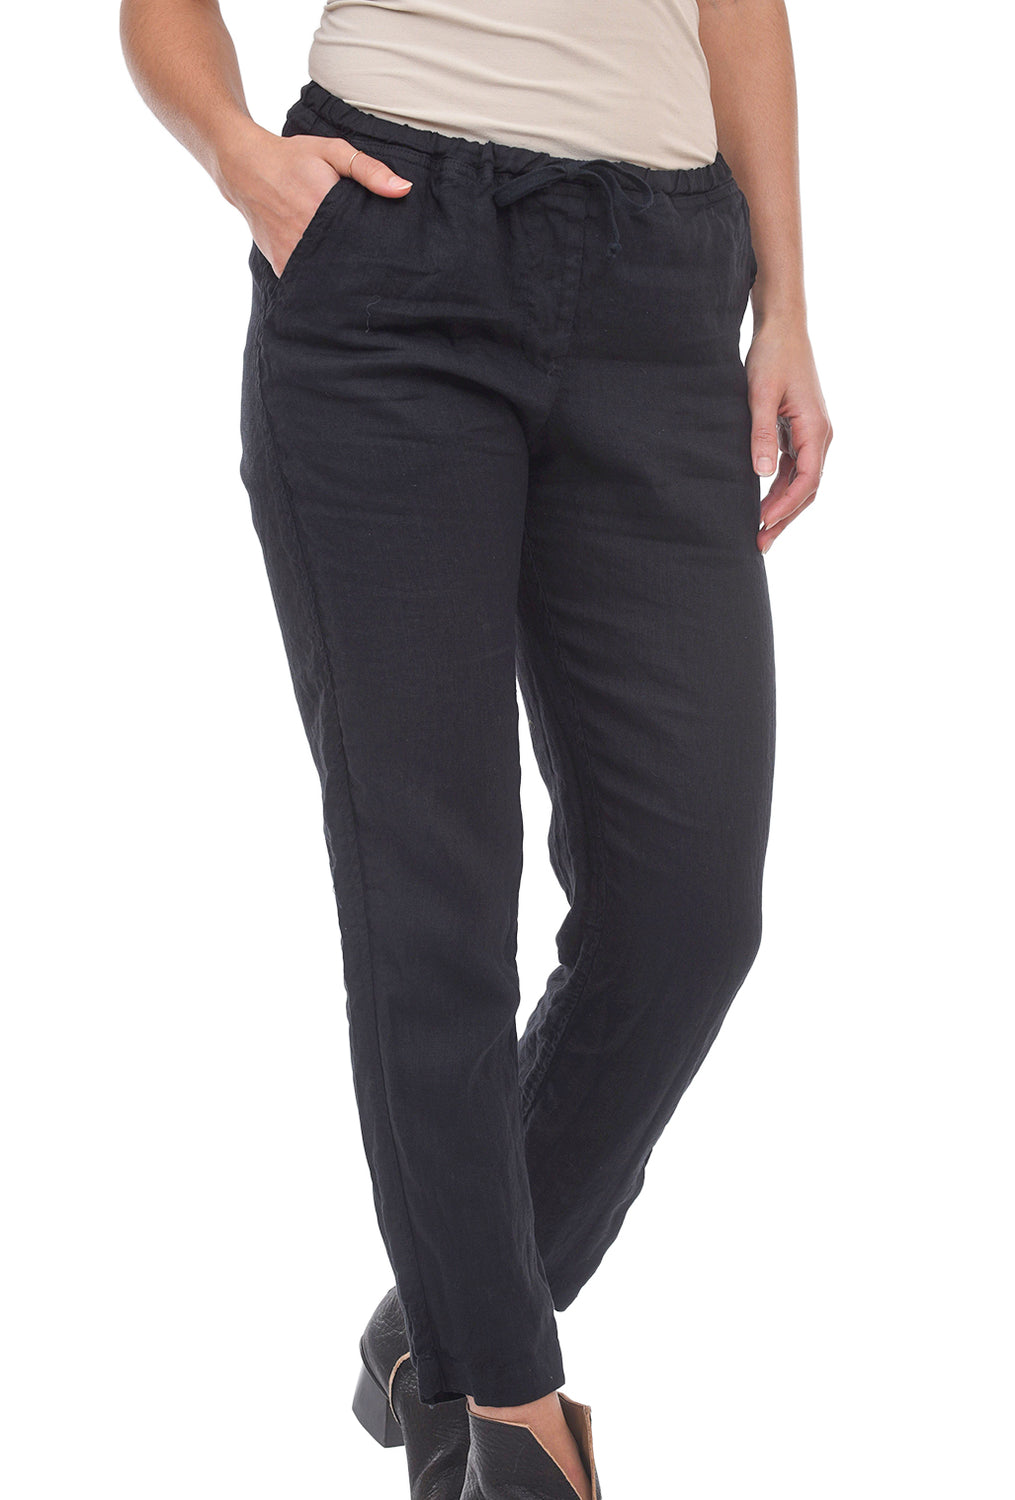 CP Shades Hampton Pants, Navy Ink